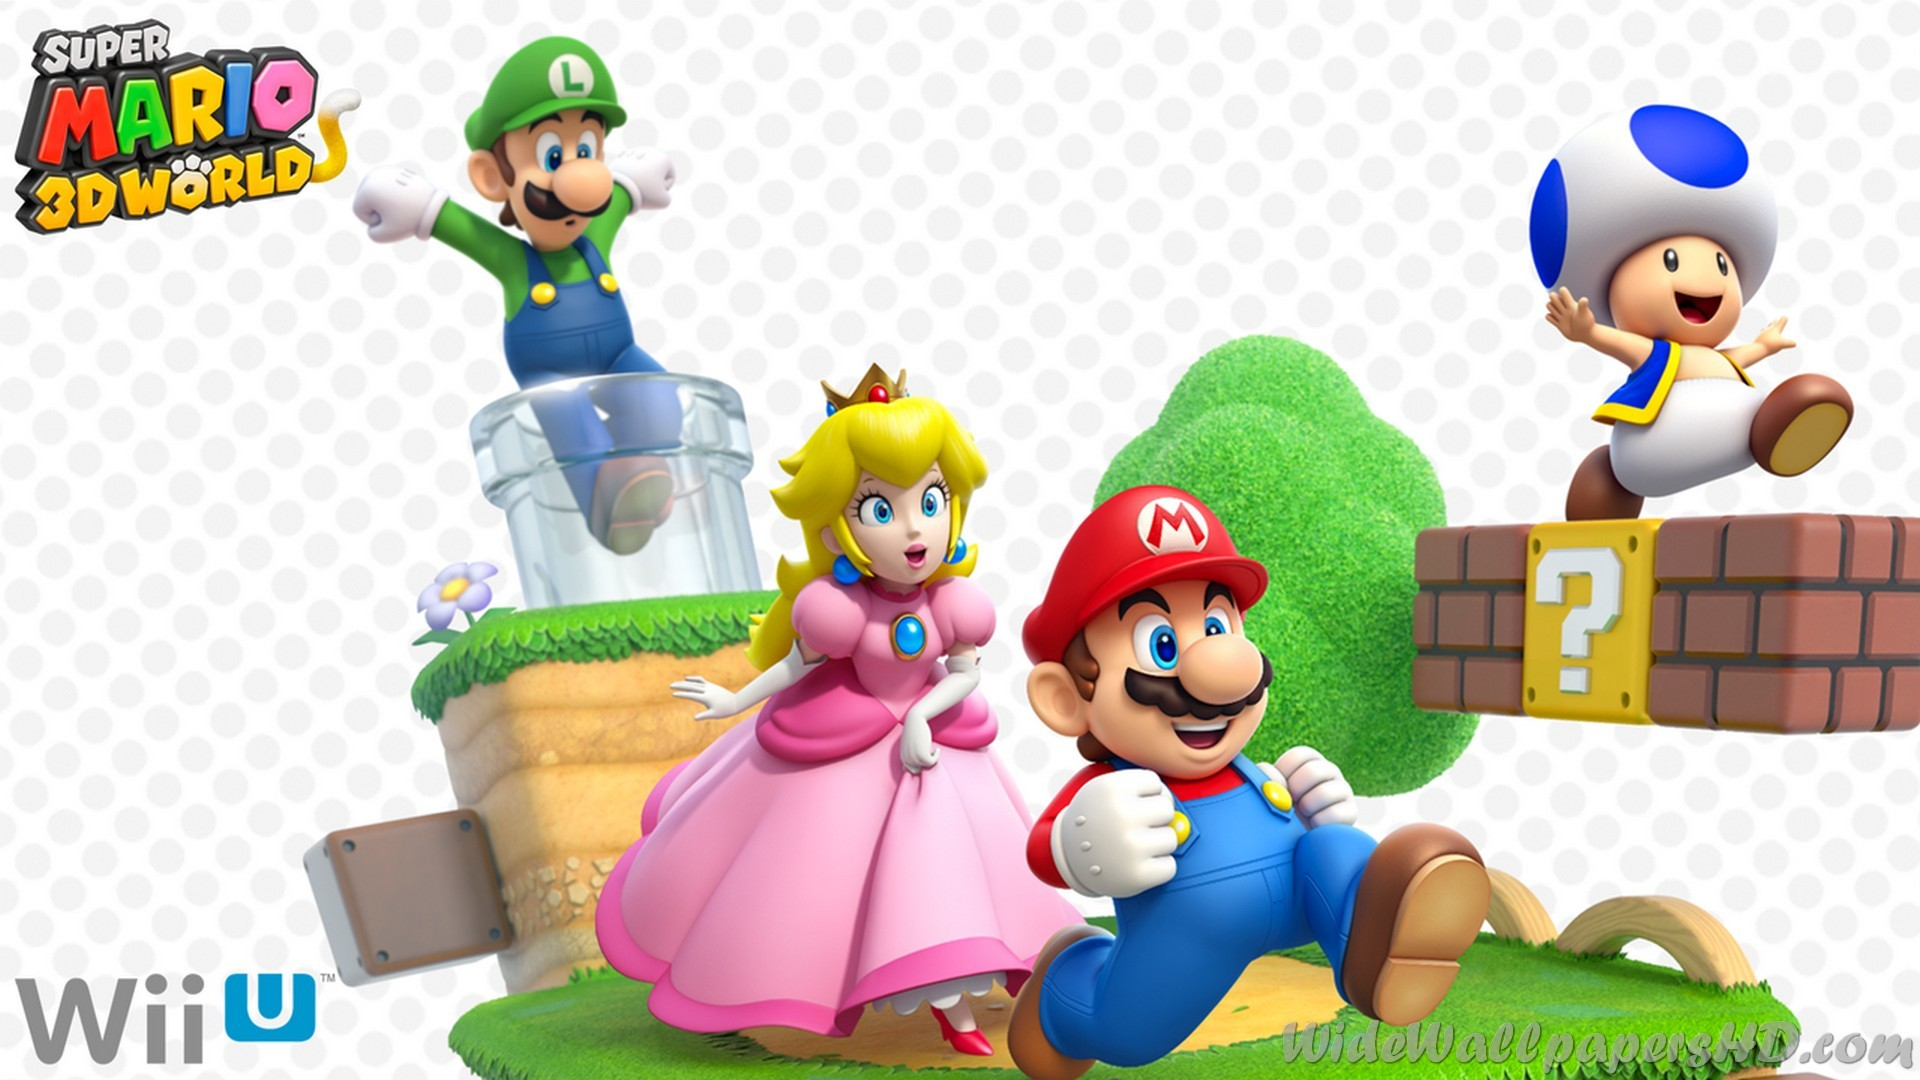 Mario Live Wallpaper 2103072 Hd Wallpaper Backgrounds Download